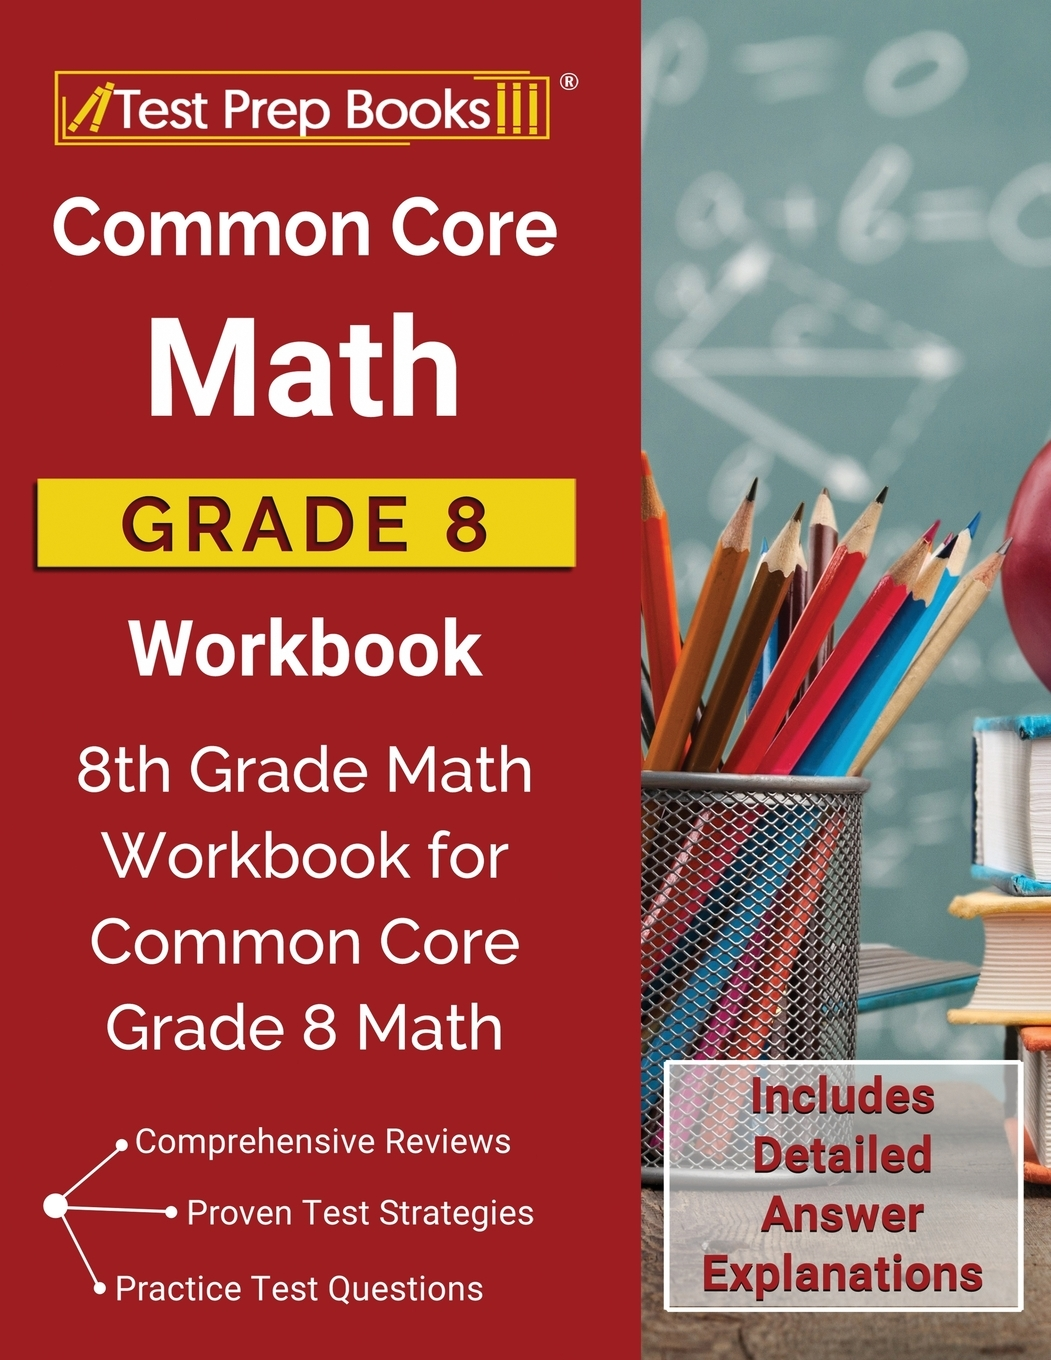 Common Core Math Grade 8 Workbook 8th Grade Math Workbook